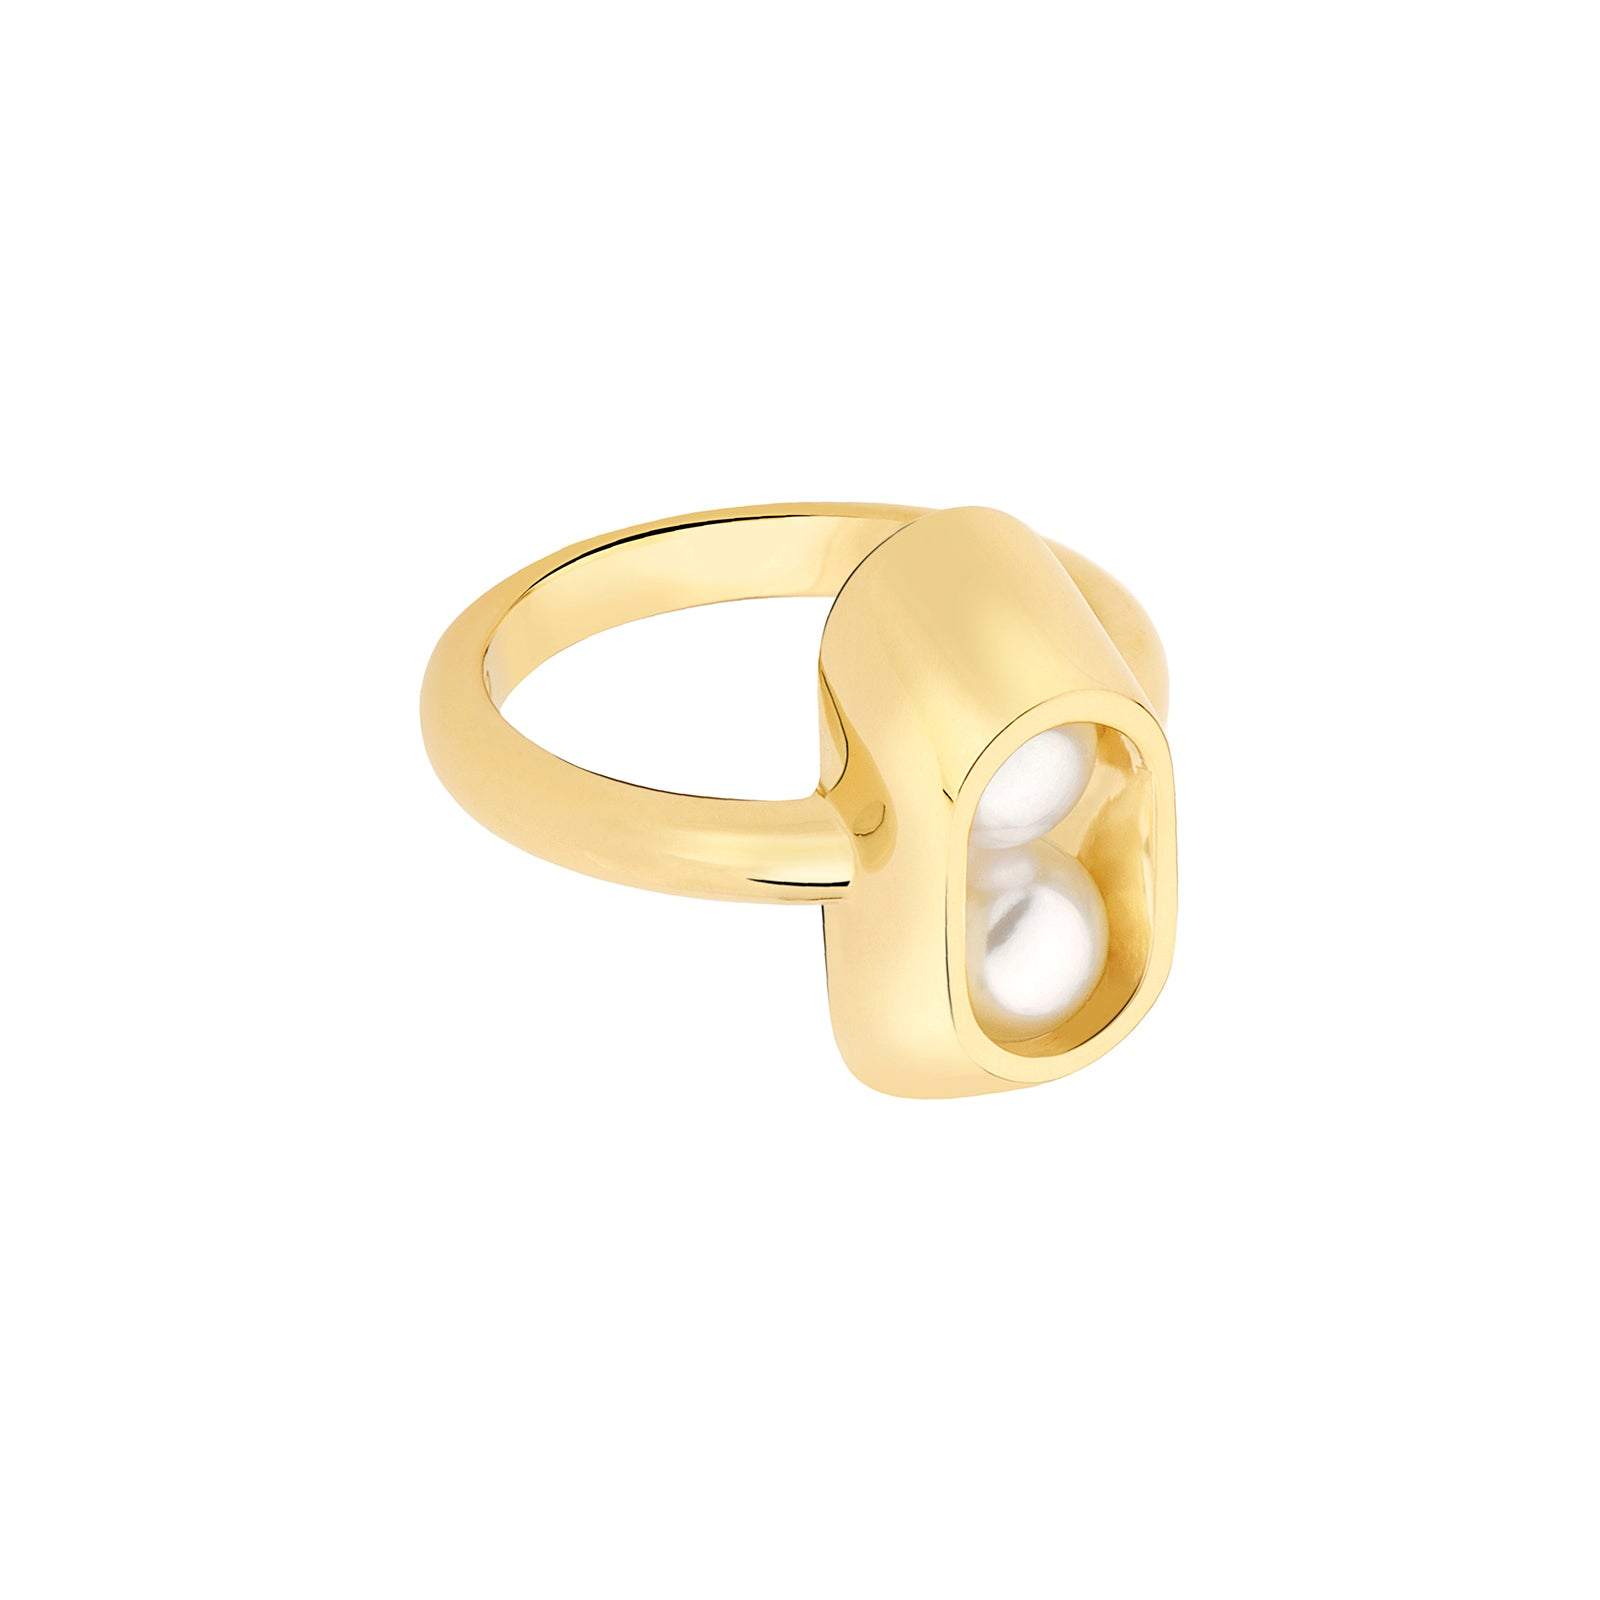 Yael Sonia Ellipse Cocoon Small Ring - Rings - Broken English Jewelry